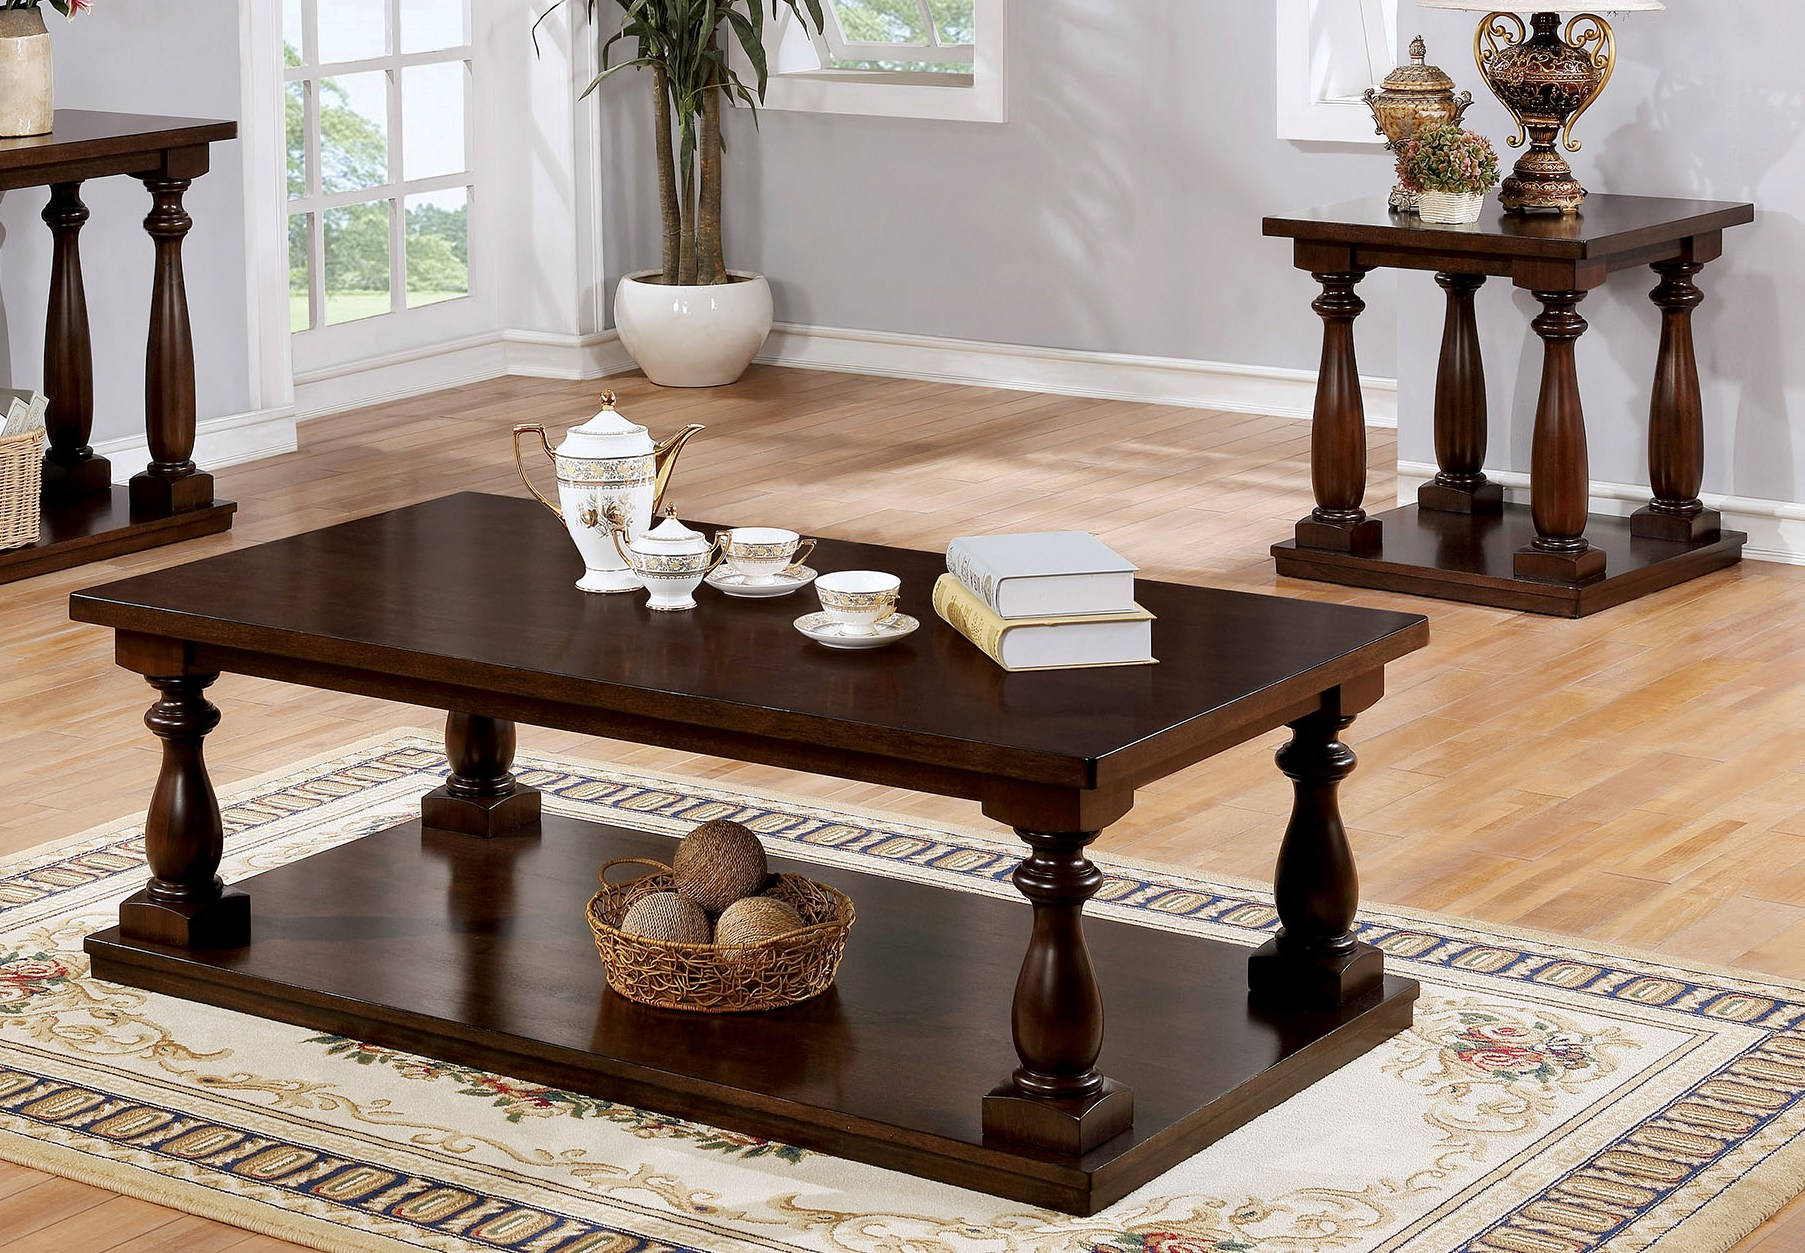 Furniture of America Tammie Cherry 3pc Coffee Table Set & Furniture of America Tammie Cherry 3pc Coffee Table Set | The Classy ...